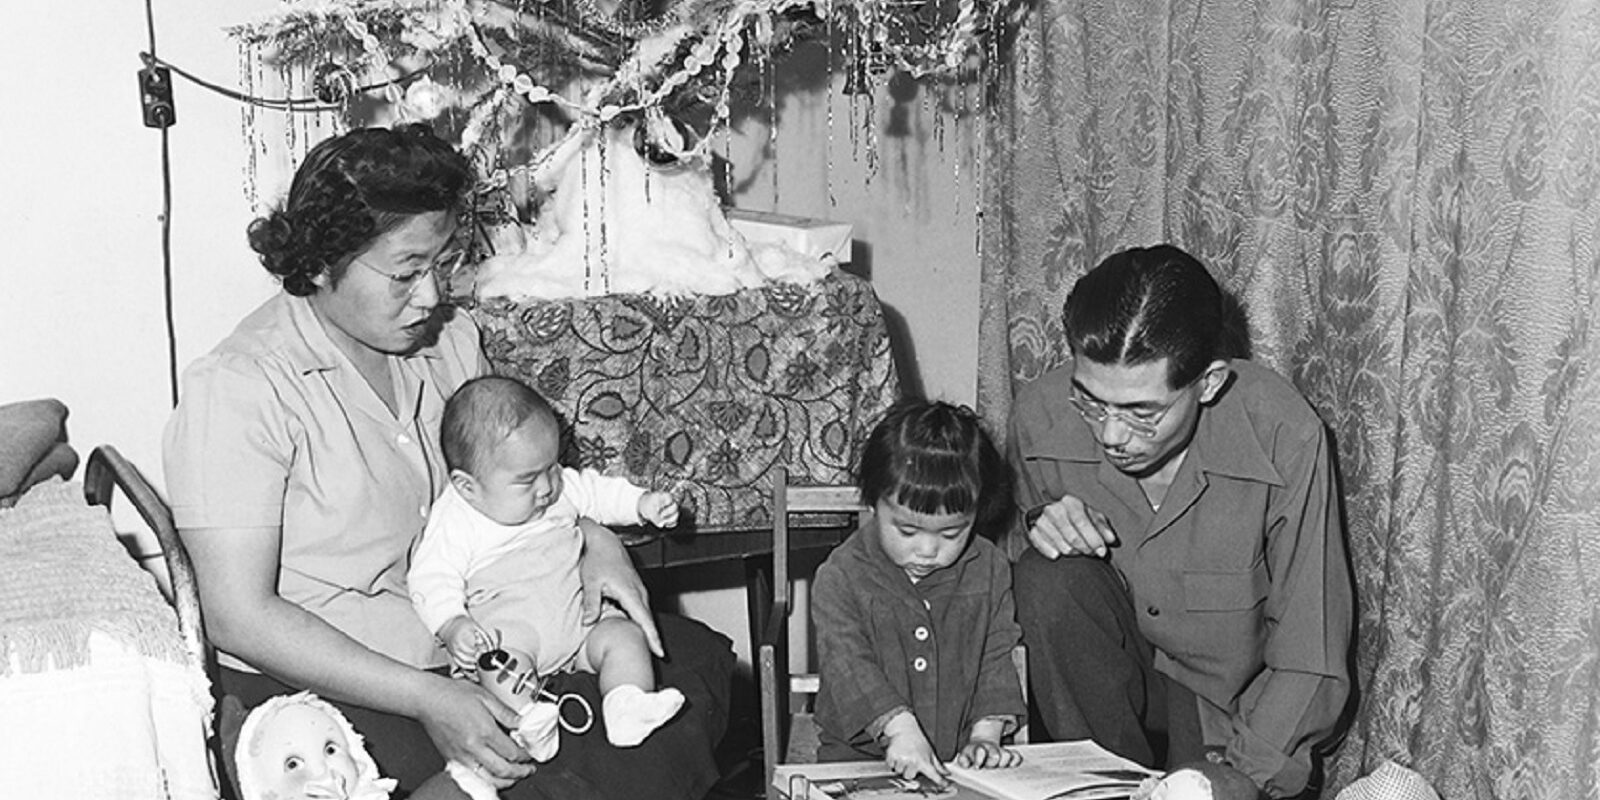 Christmas with the Frank Hirosawa Family in their barrack